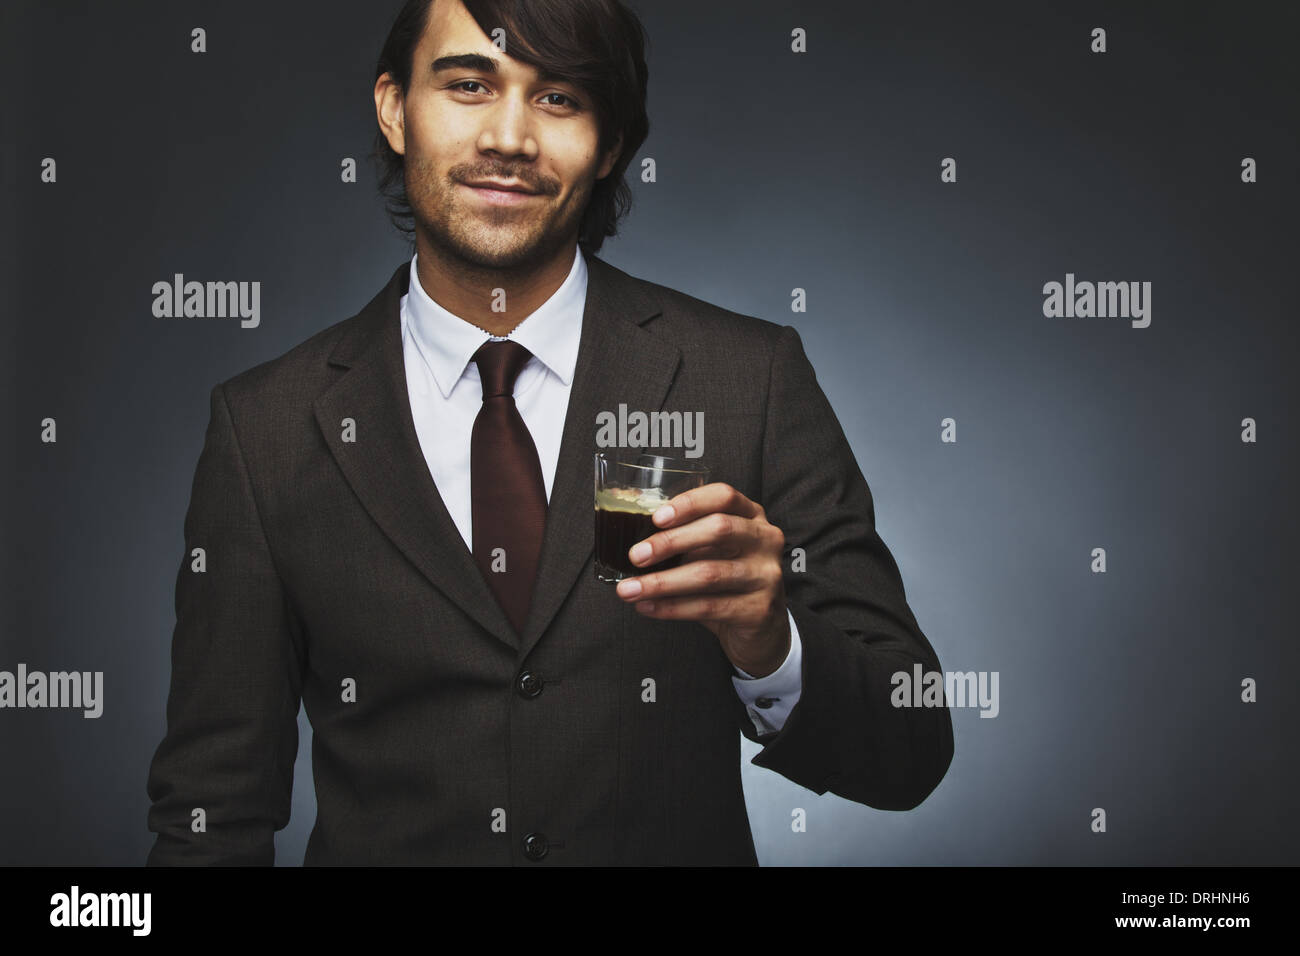 Portrait of happy young business man offering you a cup of coffee against black background. Mixed race male model - Stock Image